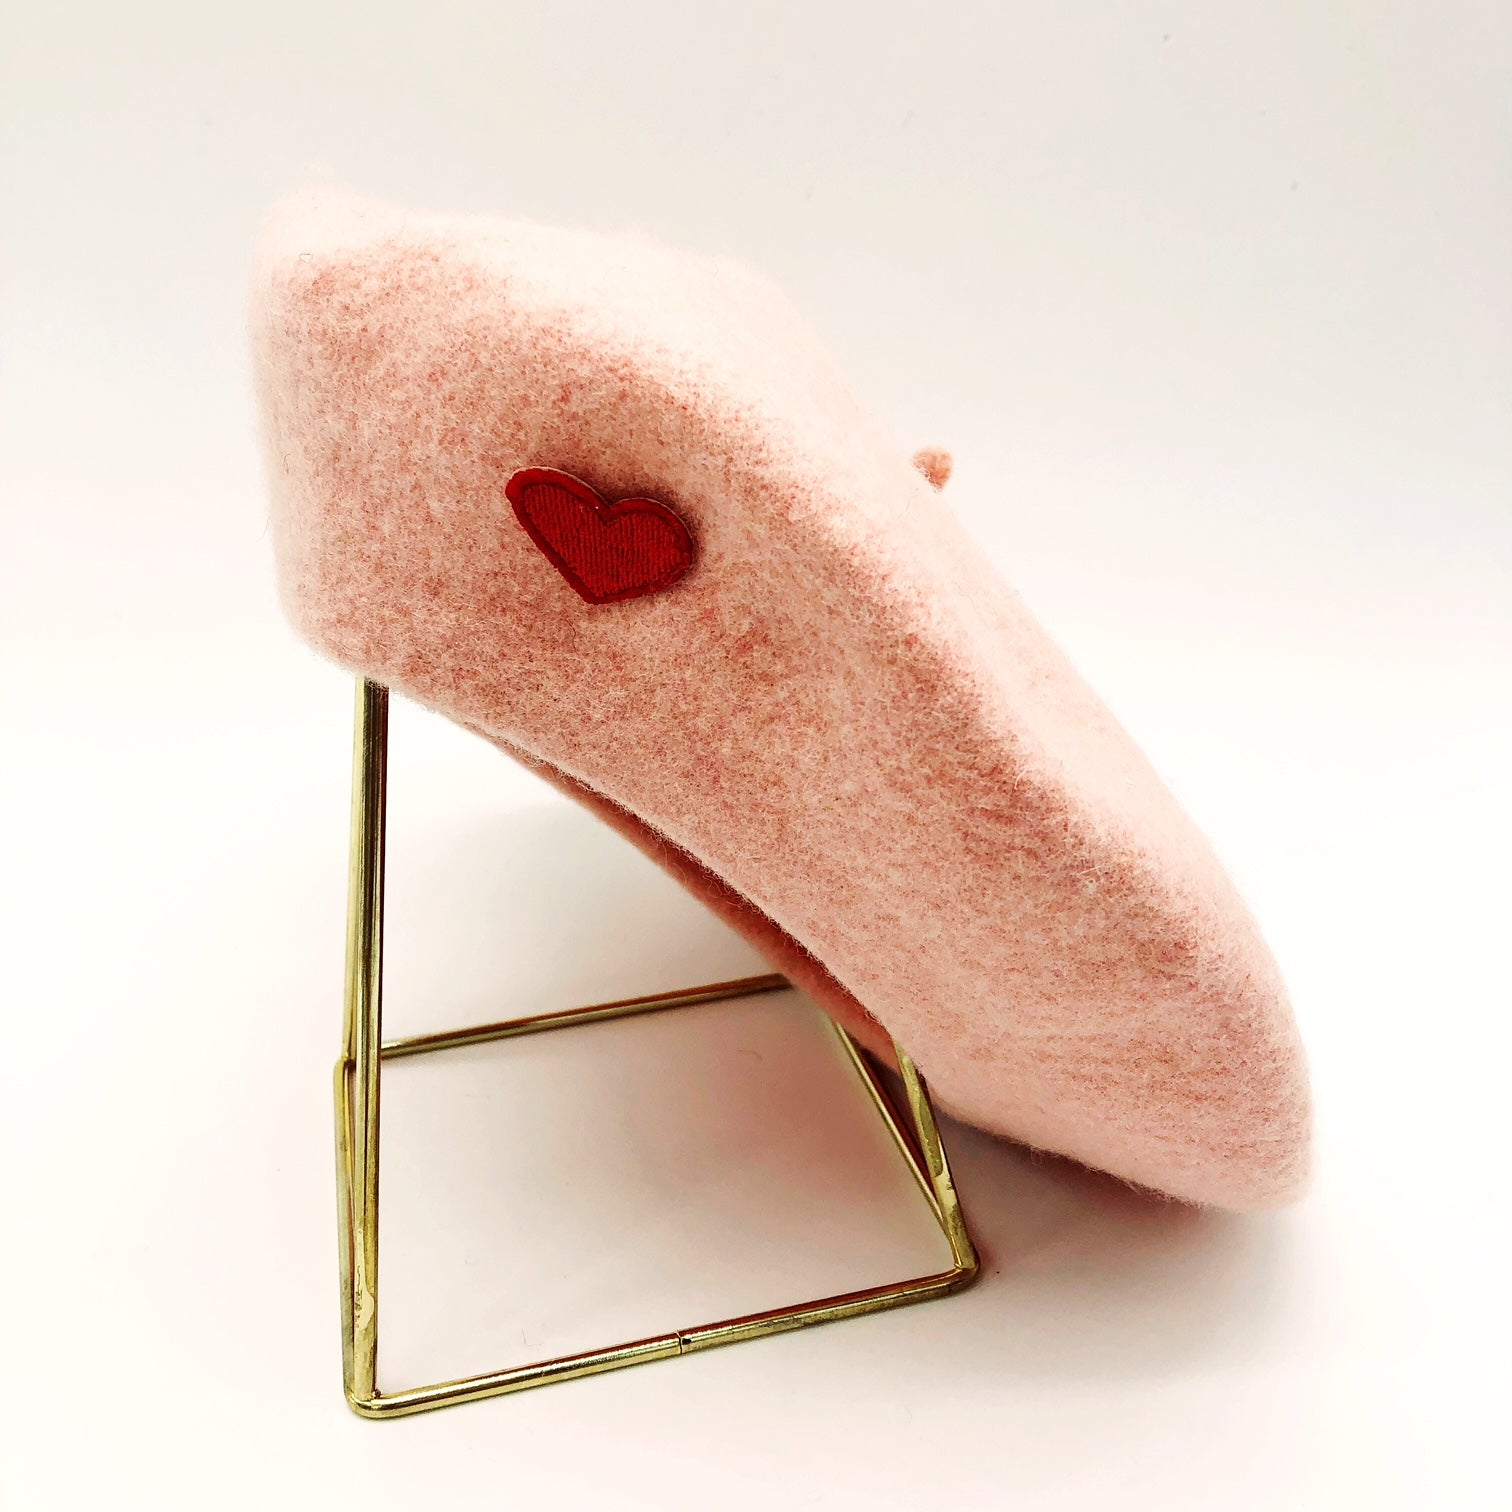 beret-rose-coeur-rouge-laine-gili-amour